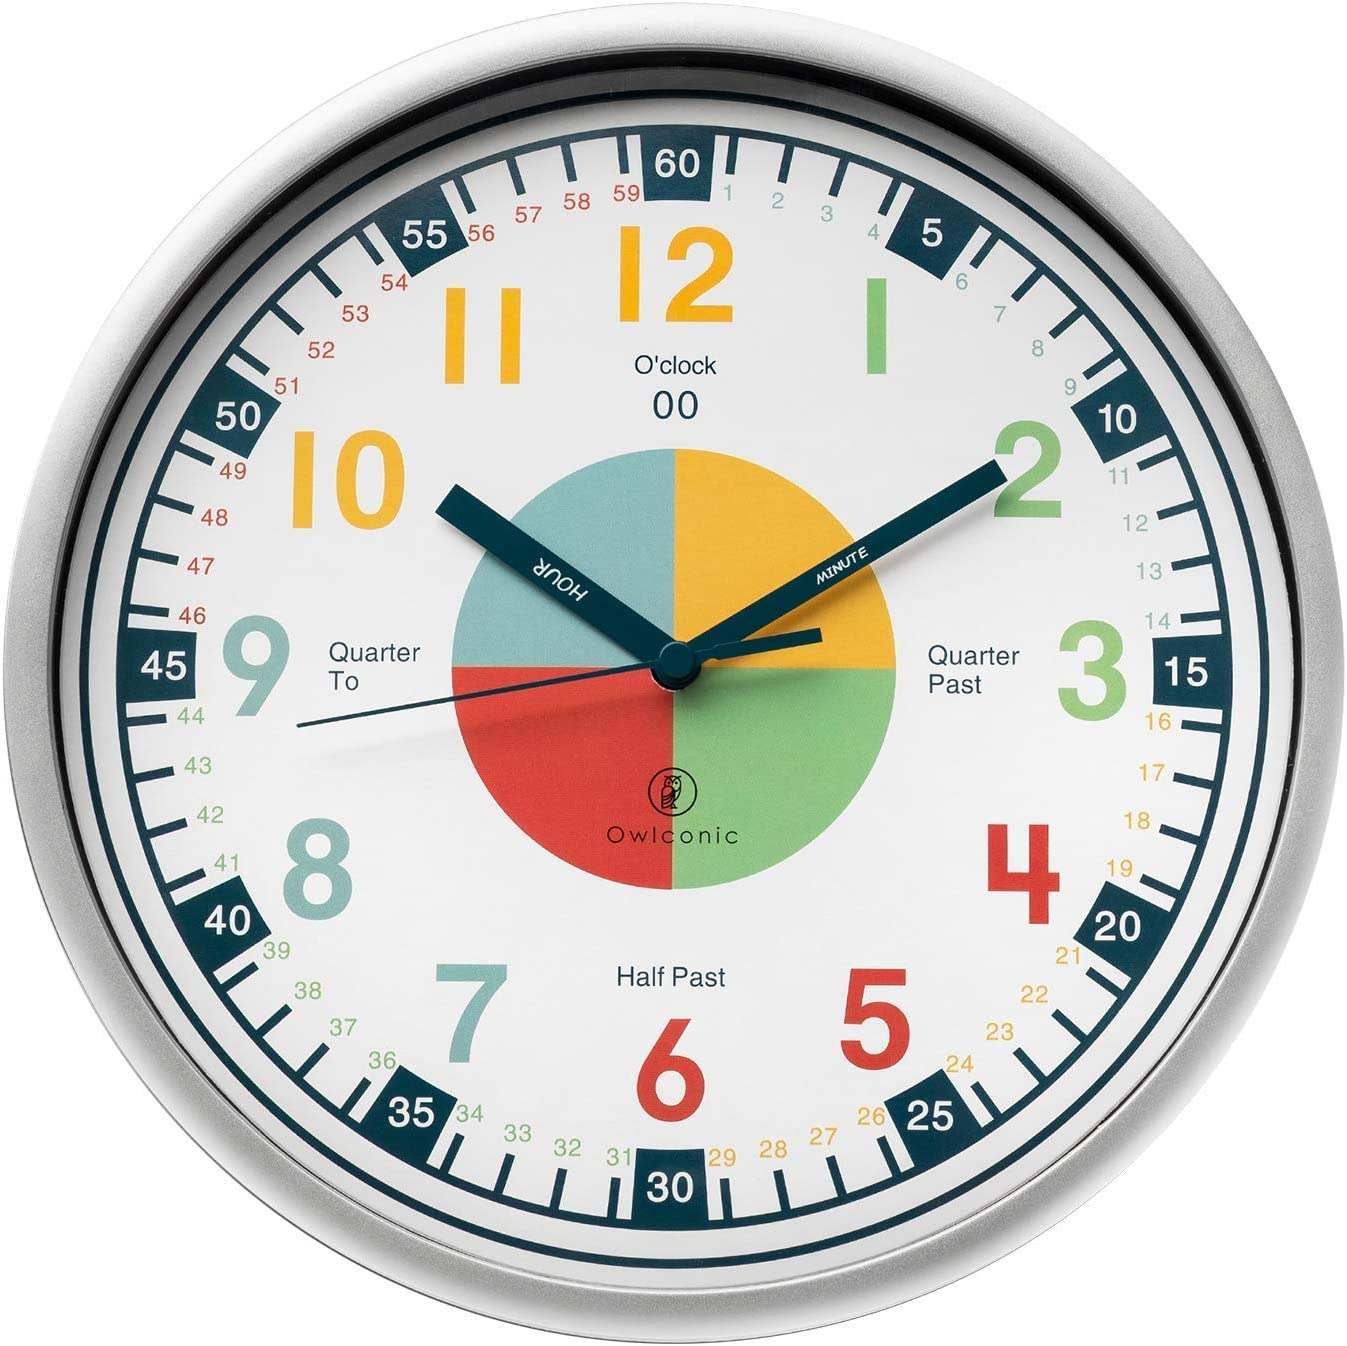 Clock with colored numbers representing the hours.